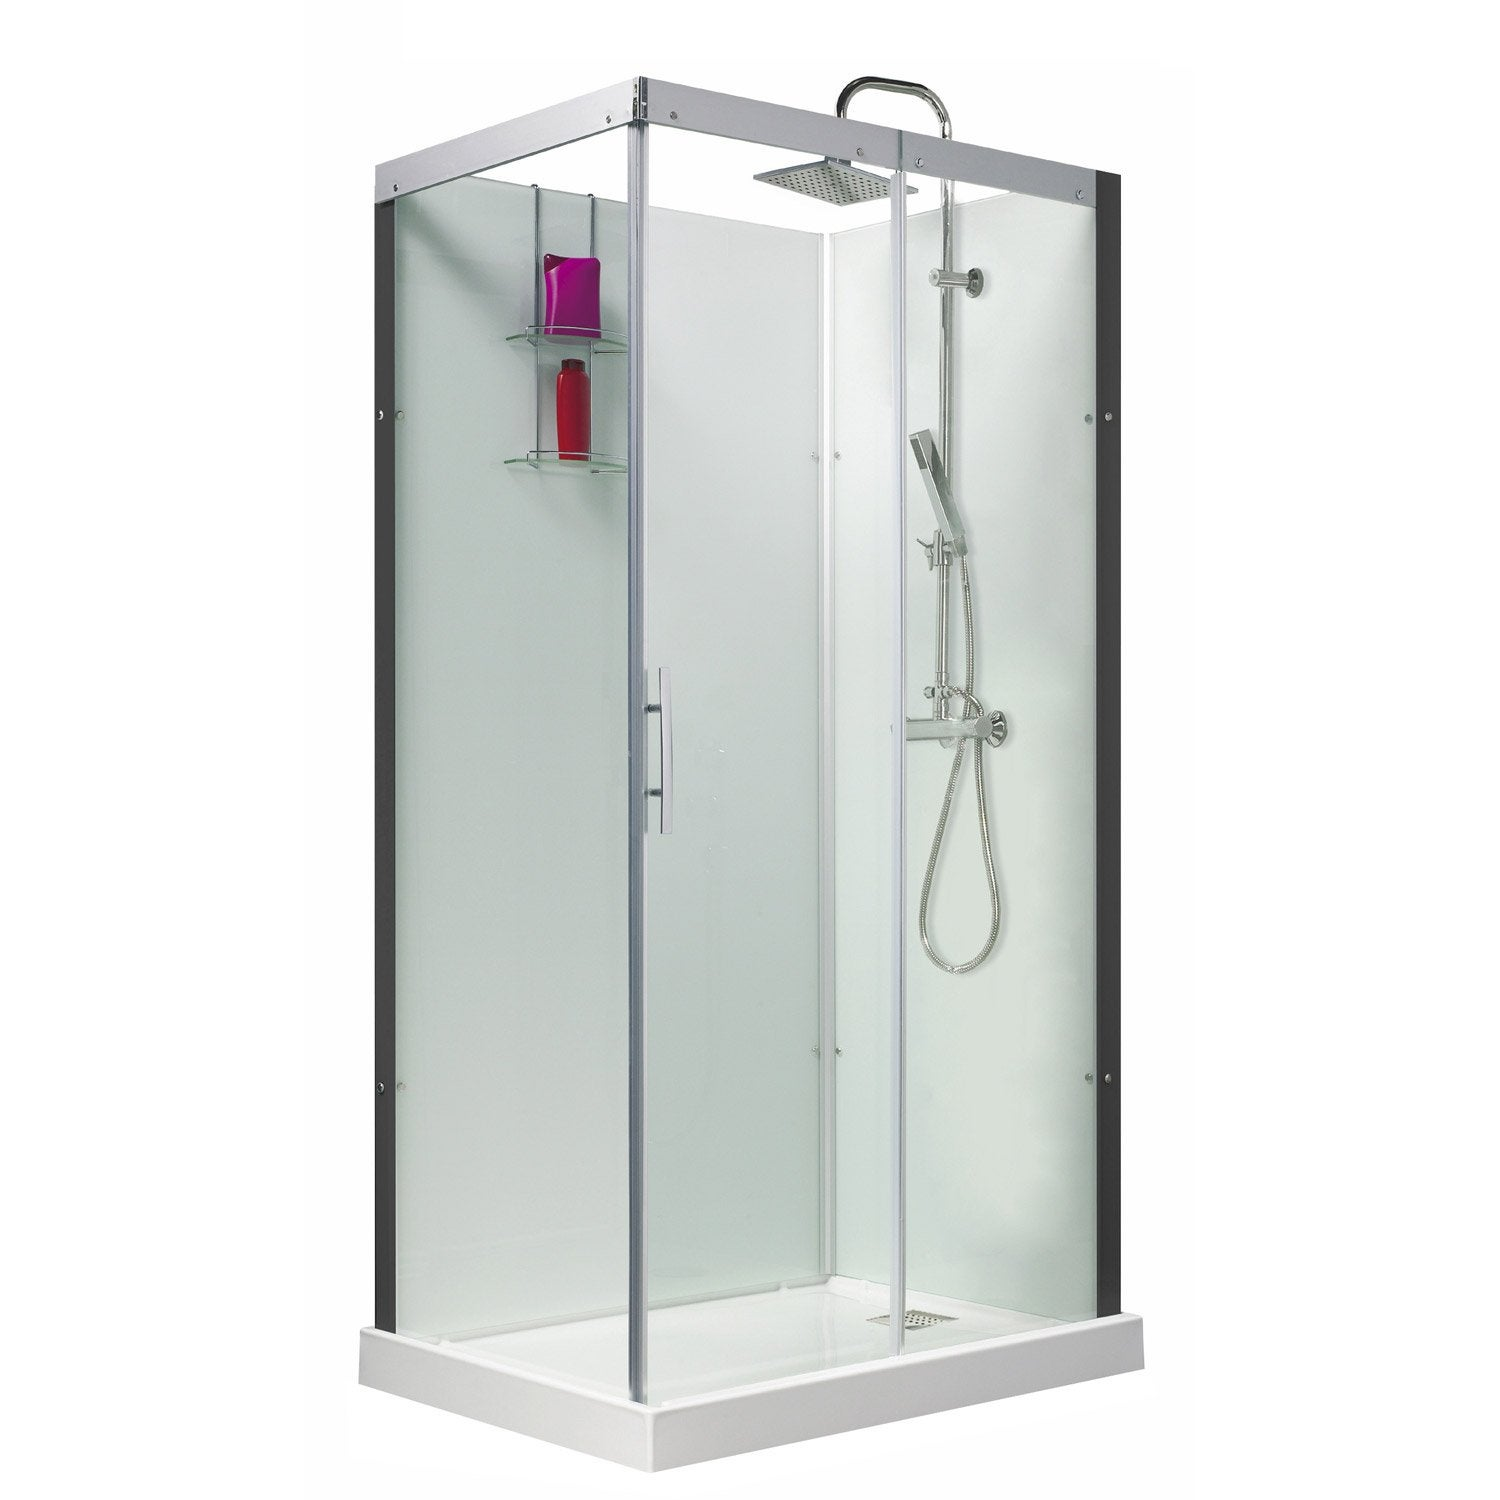 Cabine de douche rectangulaire 110x80 cm, Thalaglass 2 thermo ...